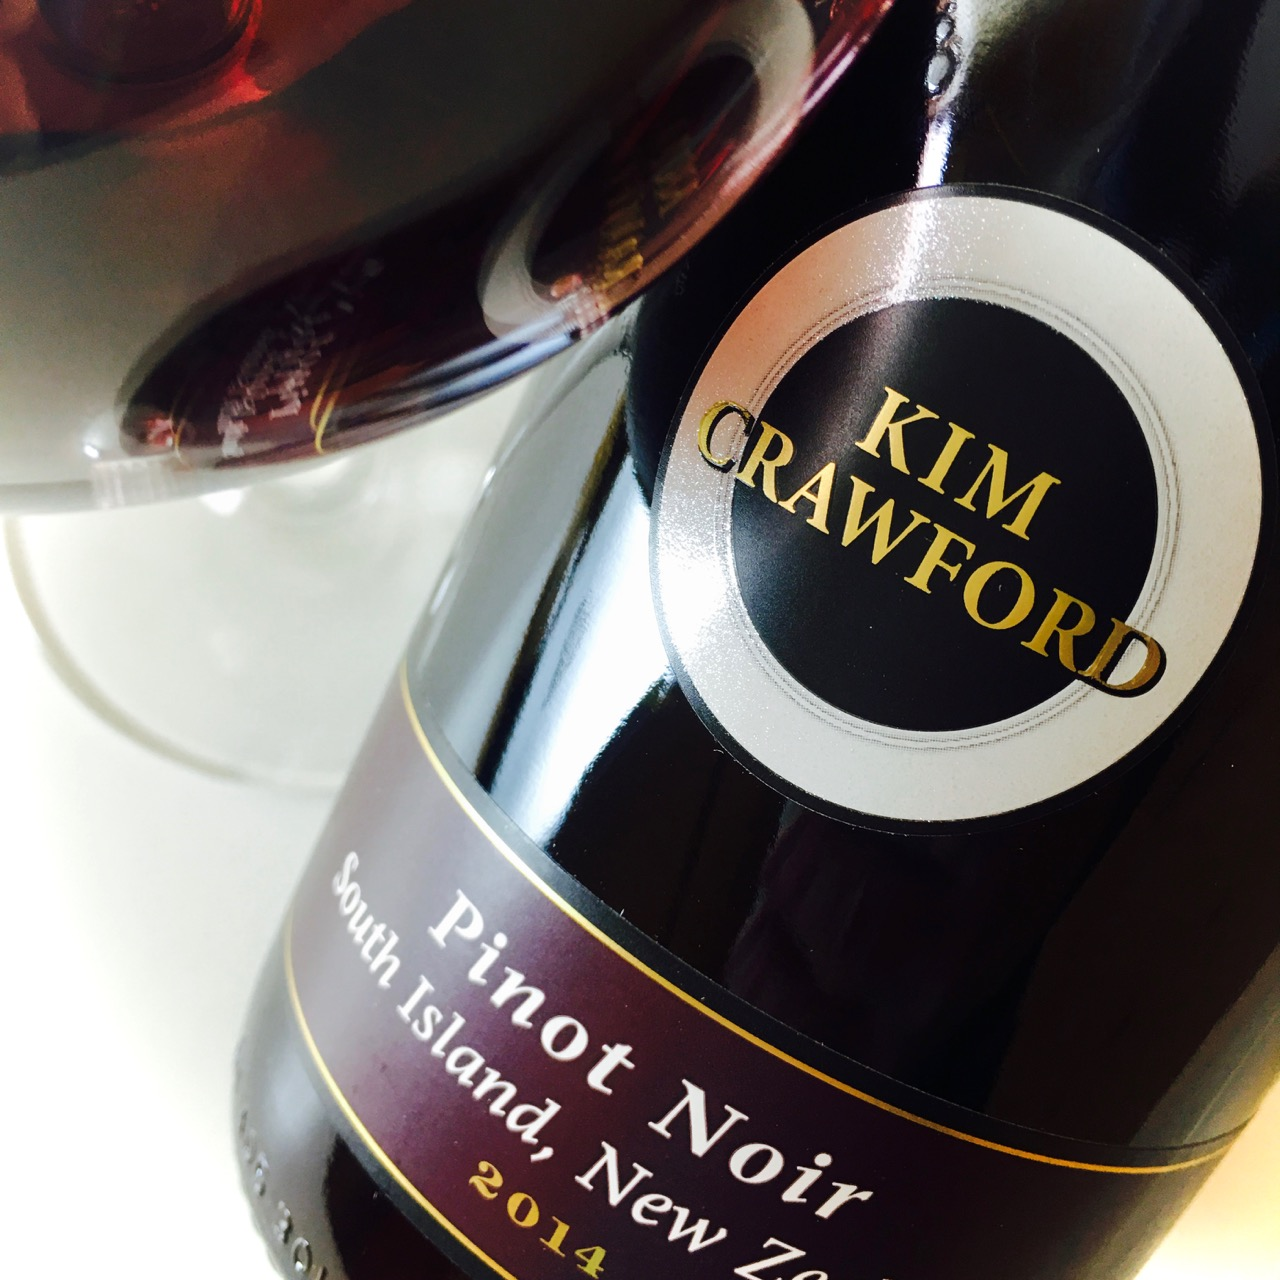 2014 Kim Crawford Pinot Noir South Island New Zealand